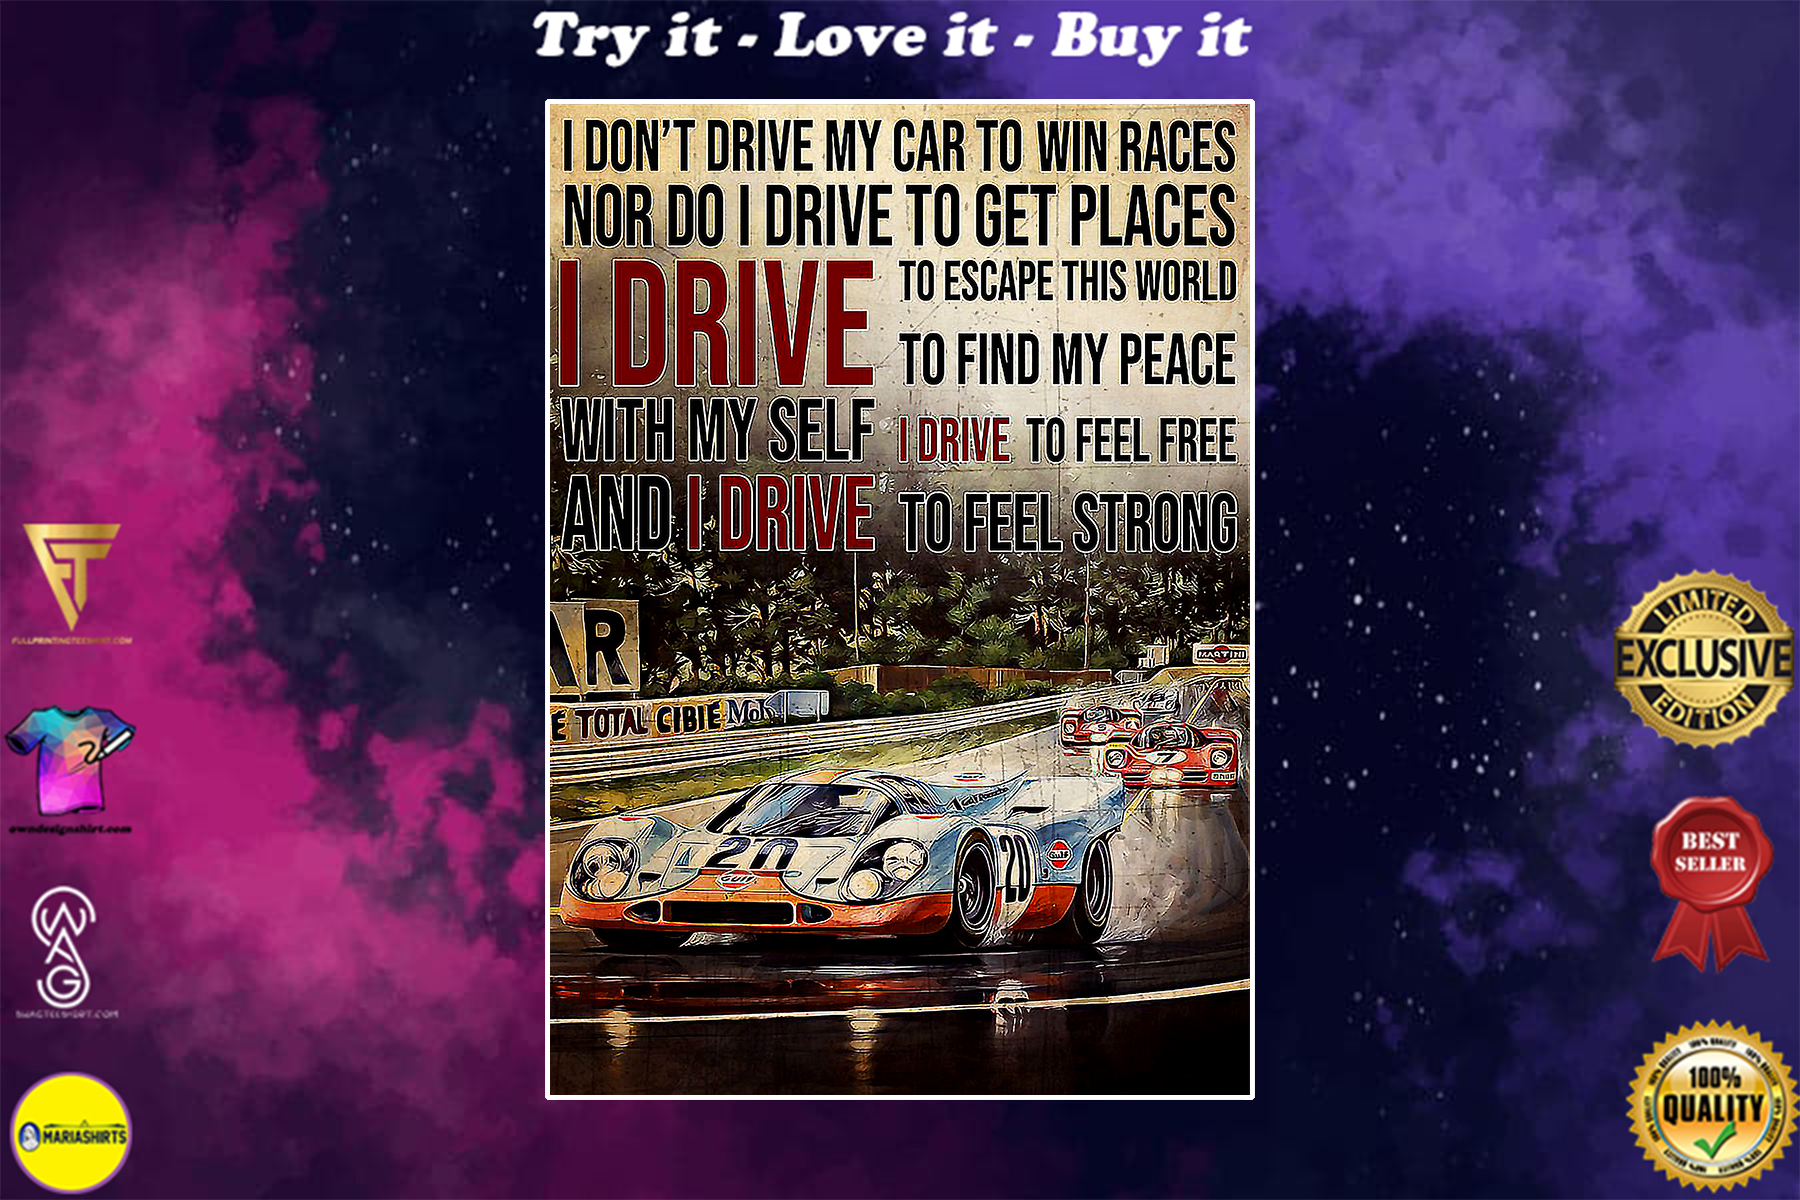 racing formula 1 i drive to feel strong vintage poster